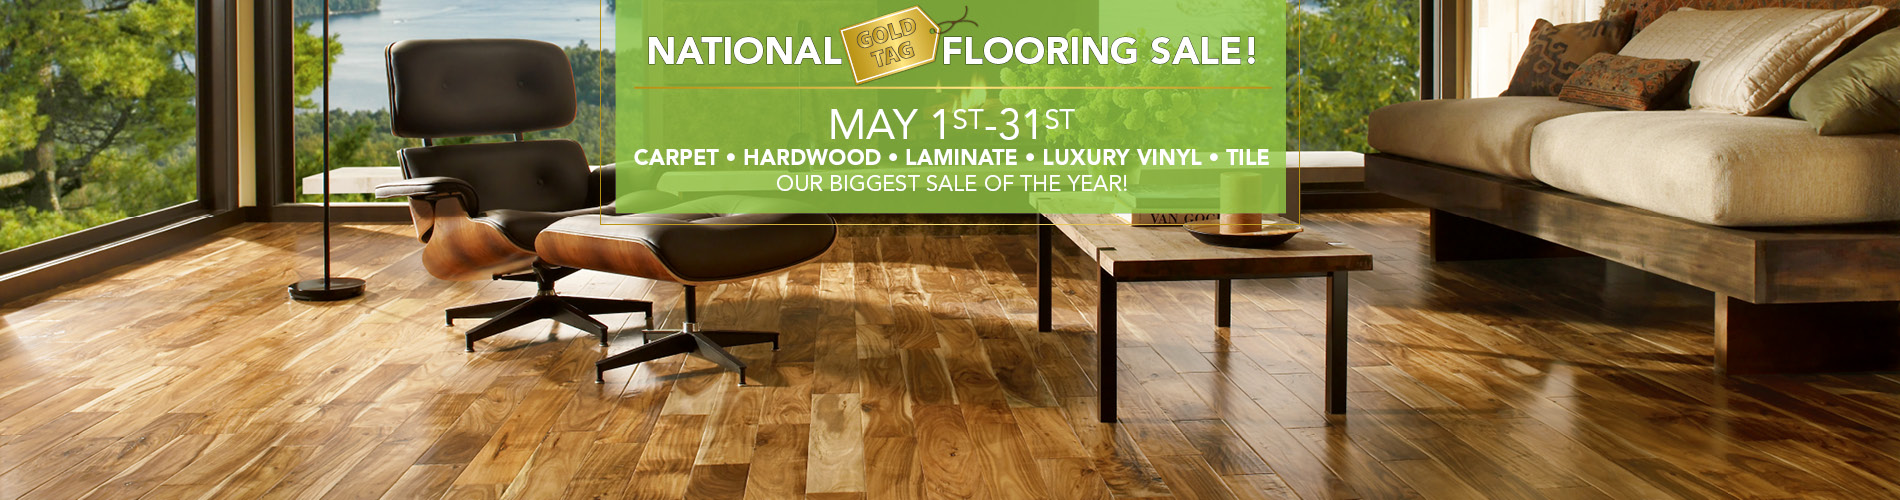 National Gold Tag Flooring Sale Tile Hardwood Carpet Laminate